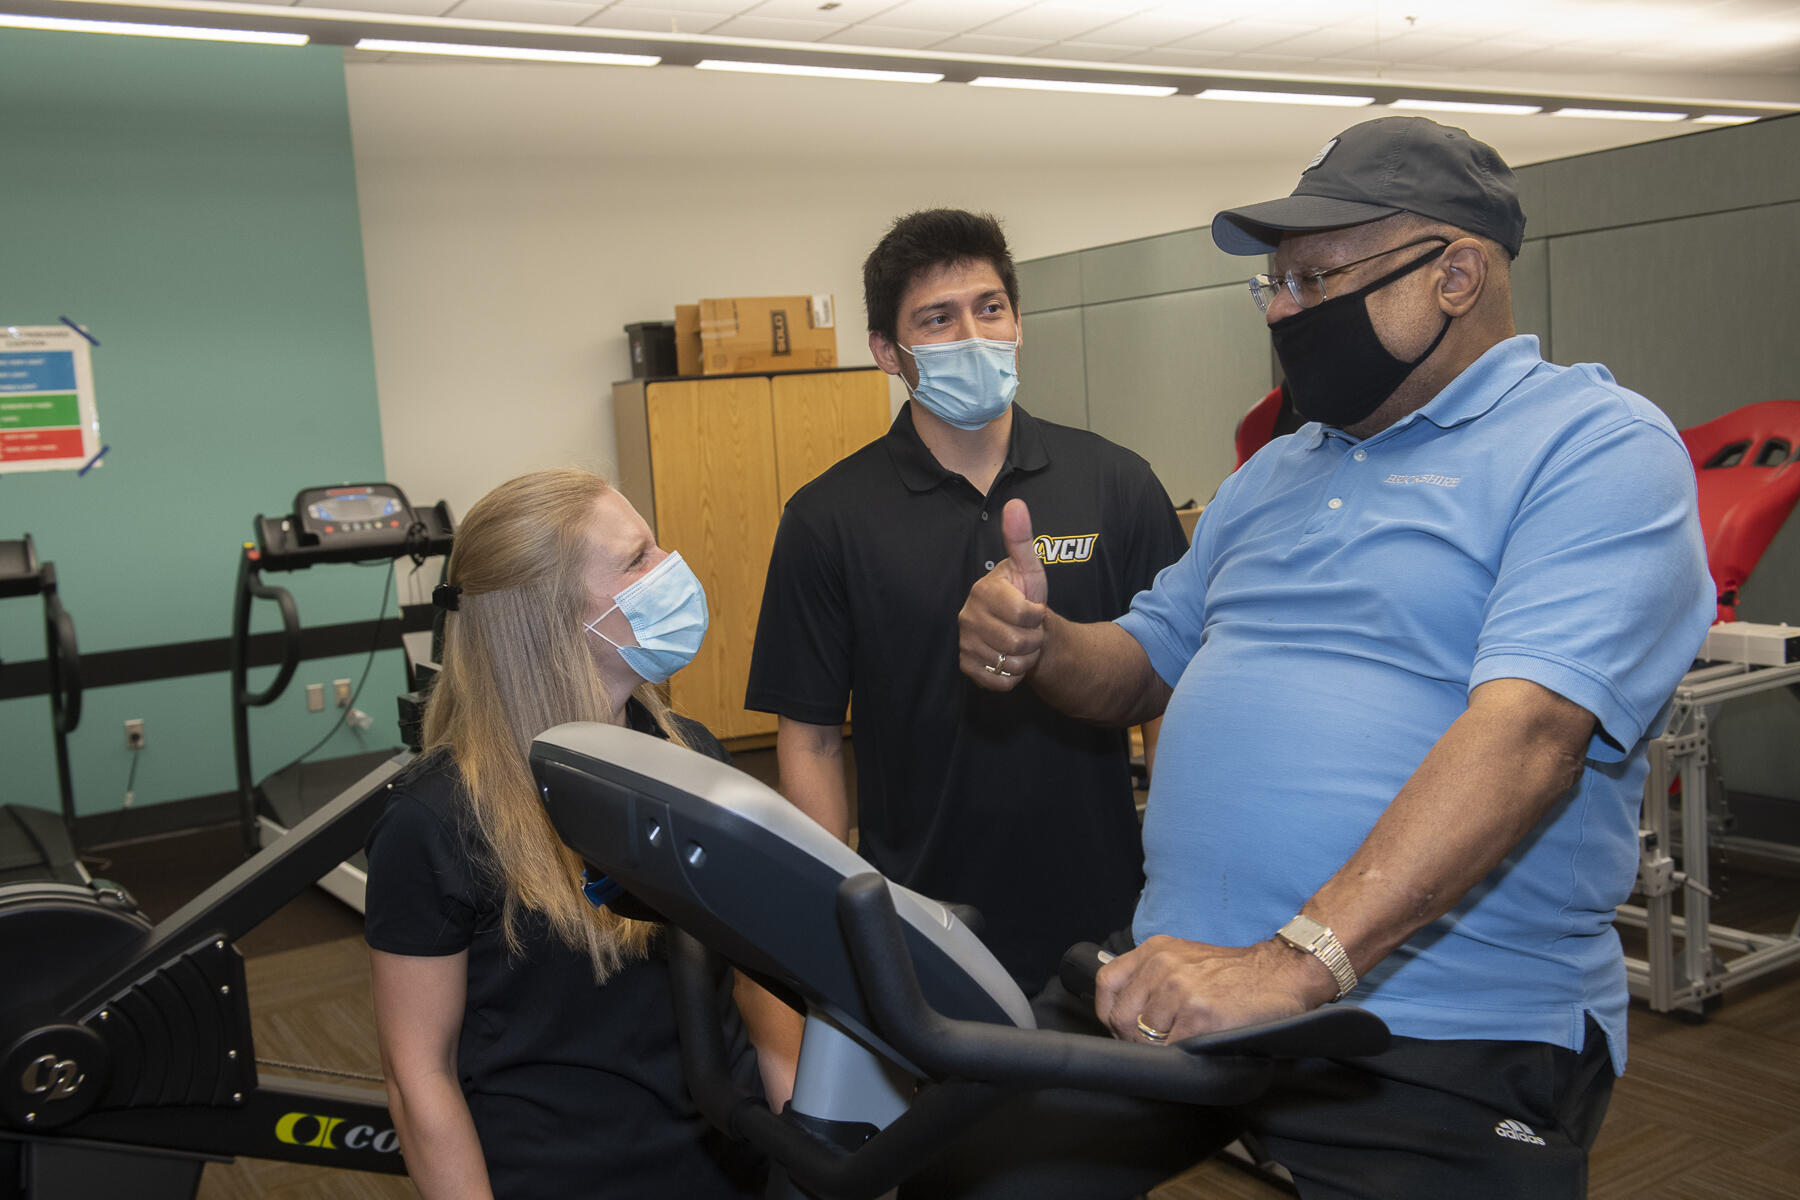 an older man gives a thumbs up to two trainers as he pedals on an exercise bike